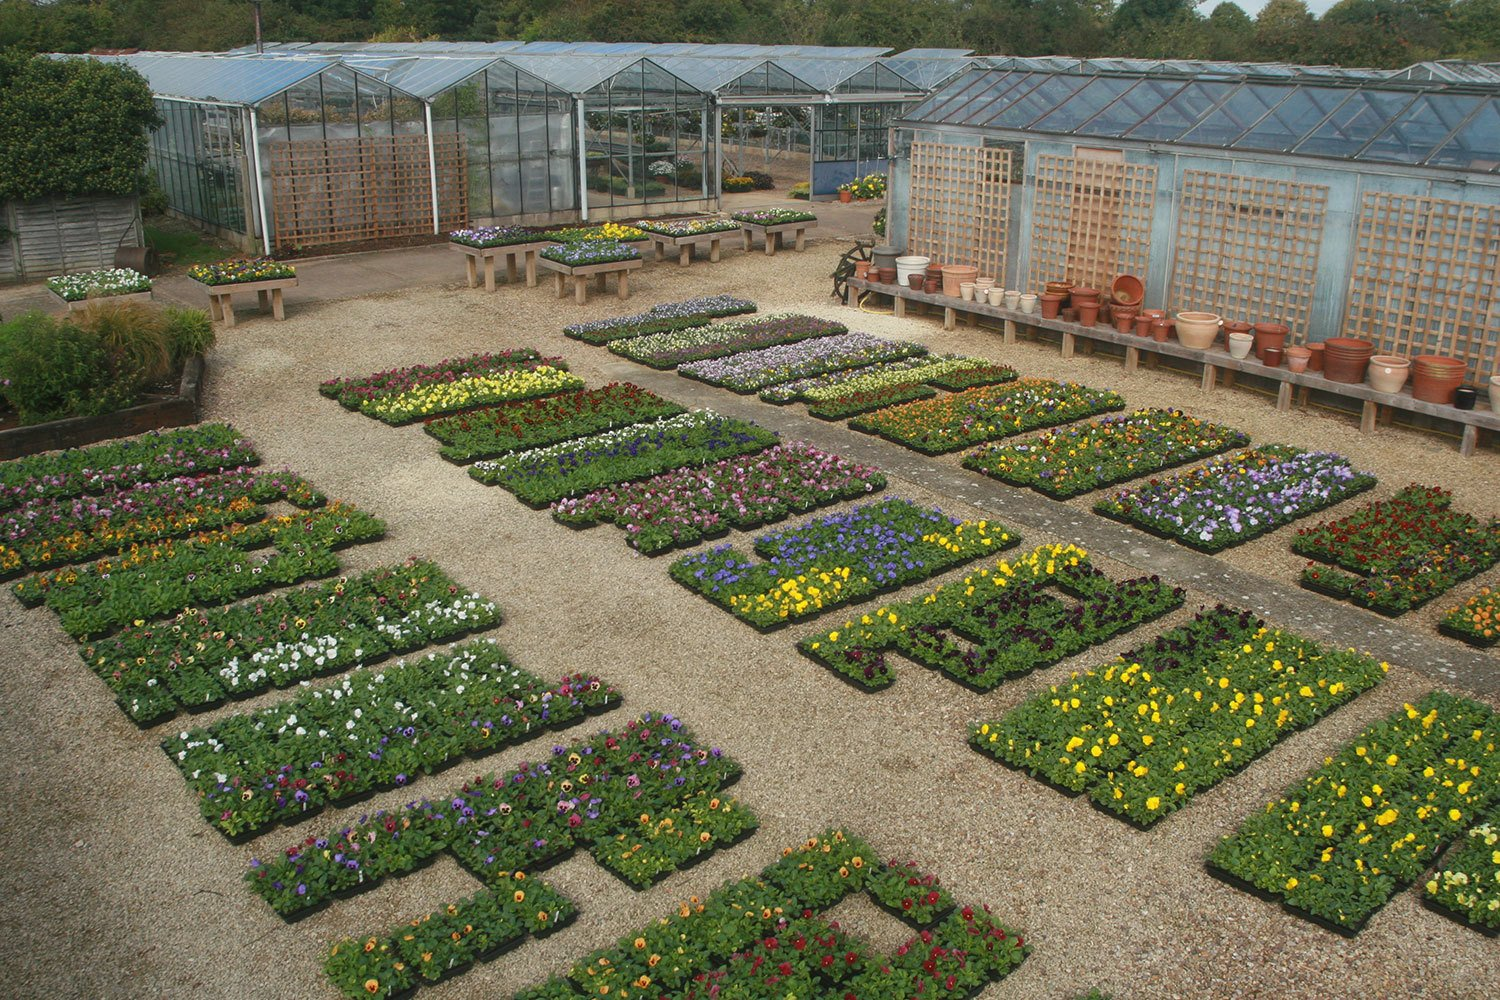 designer bedding plants